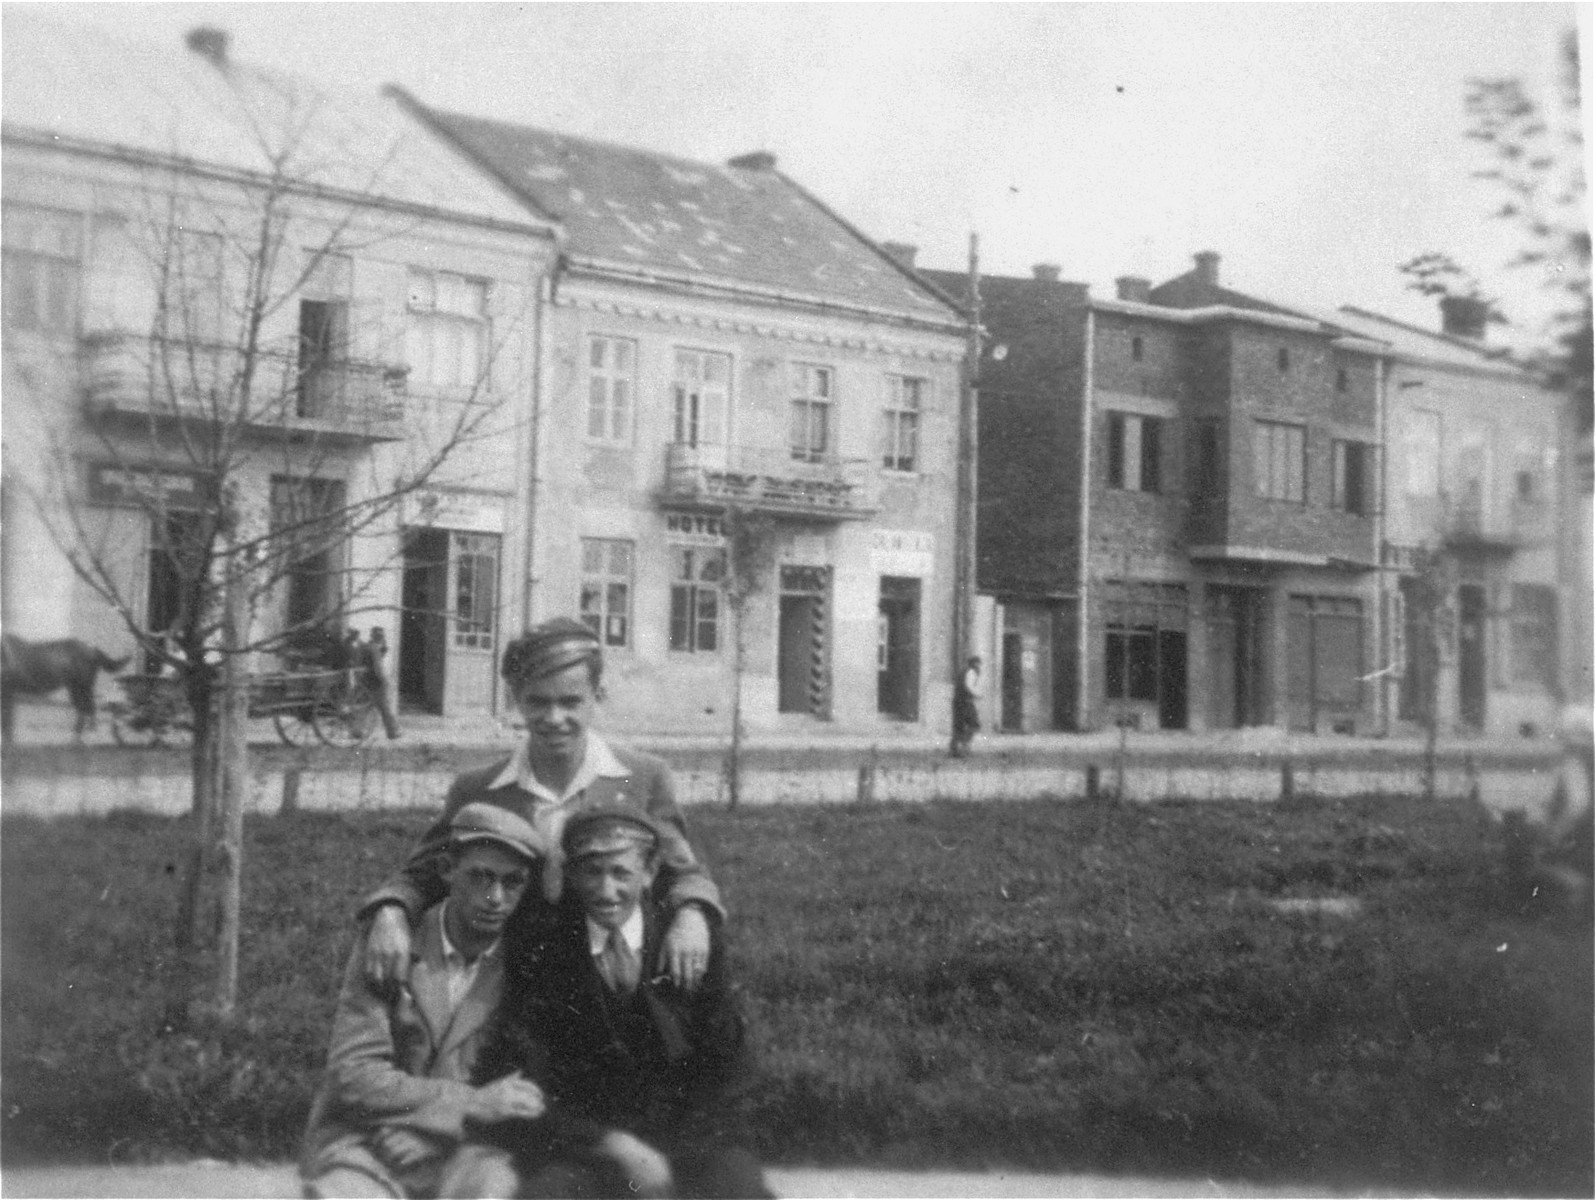 Joshua Heilman with two friends in the center of Lubaczow.